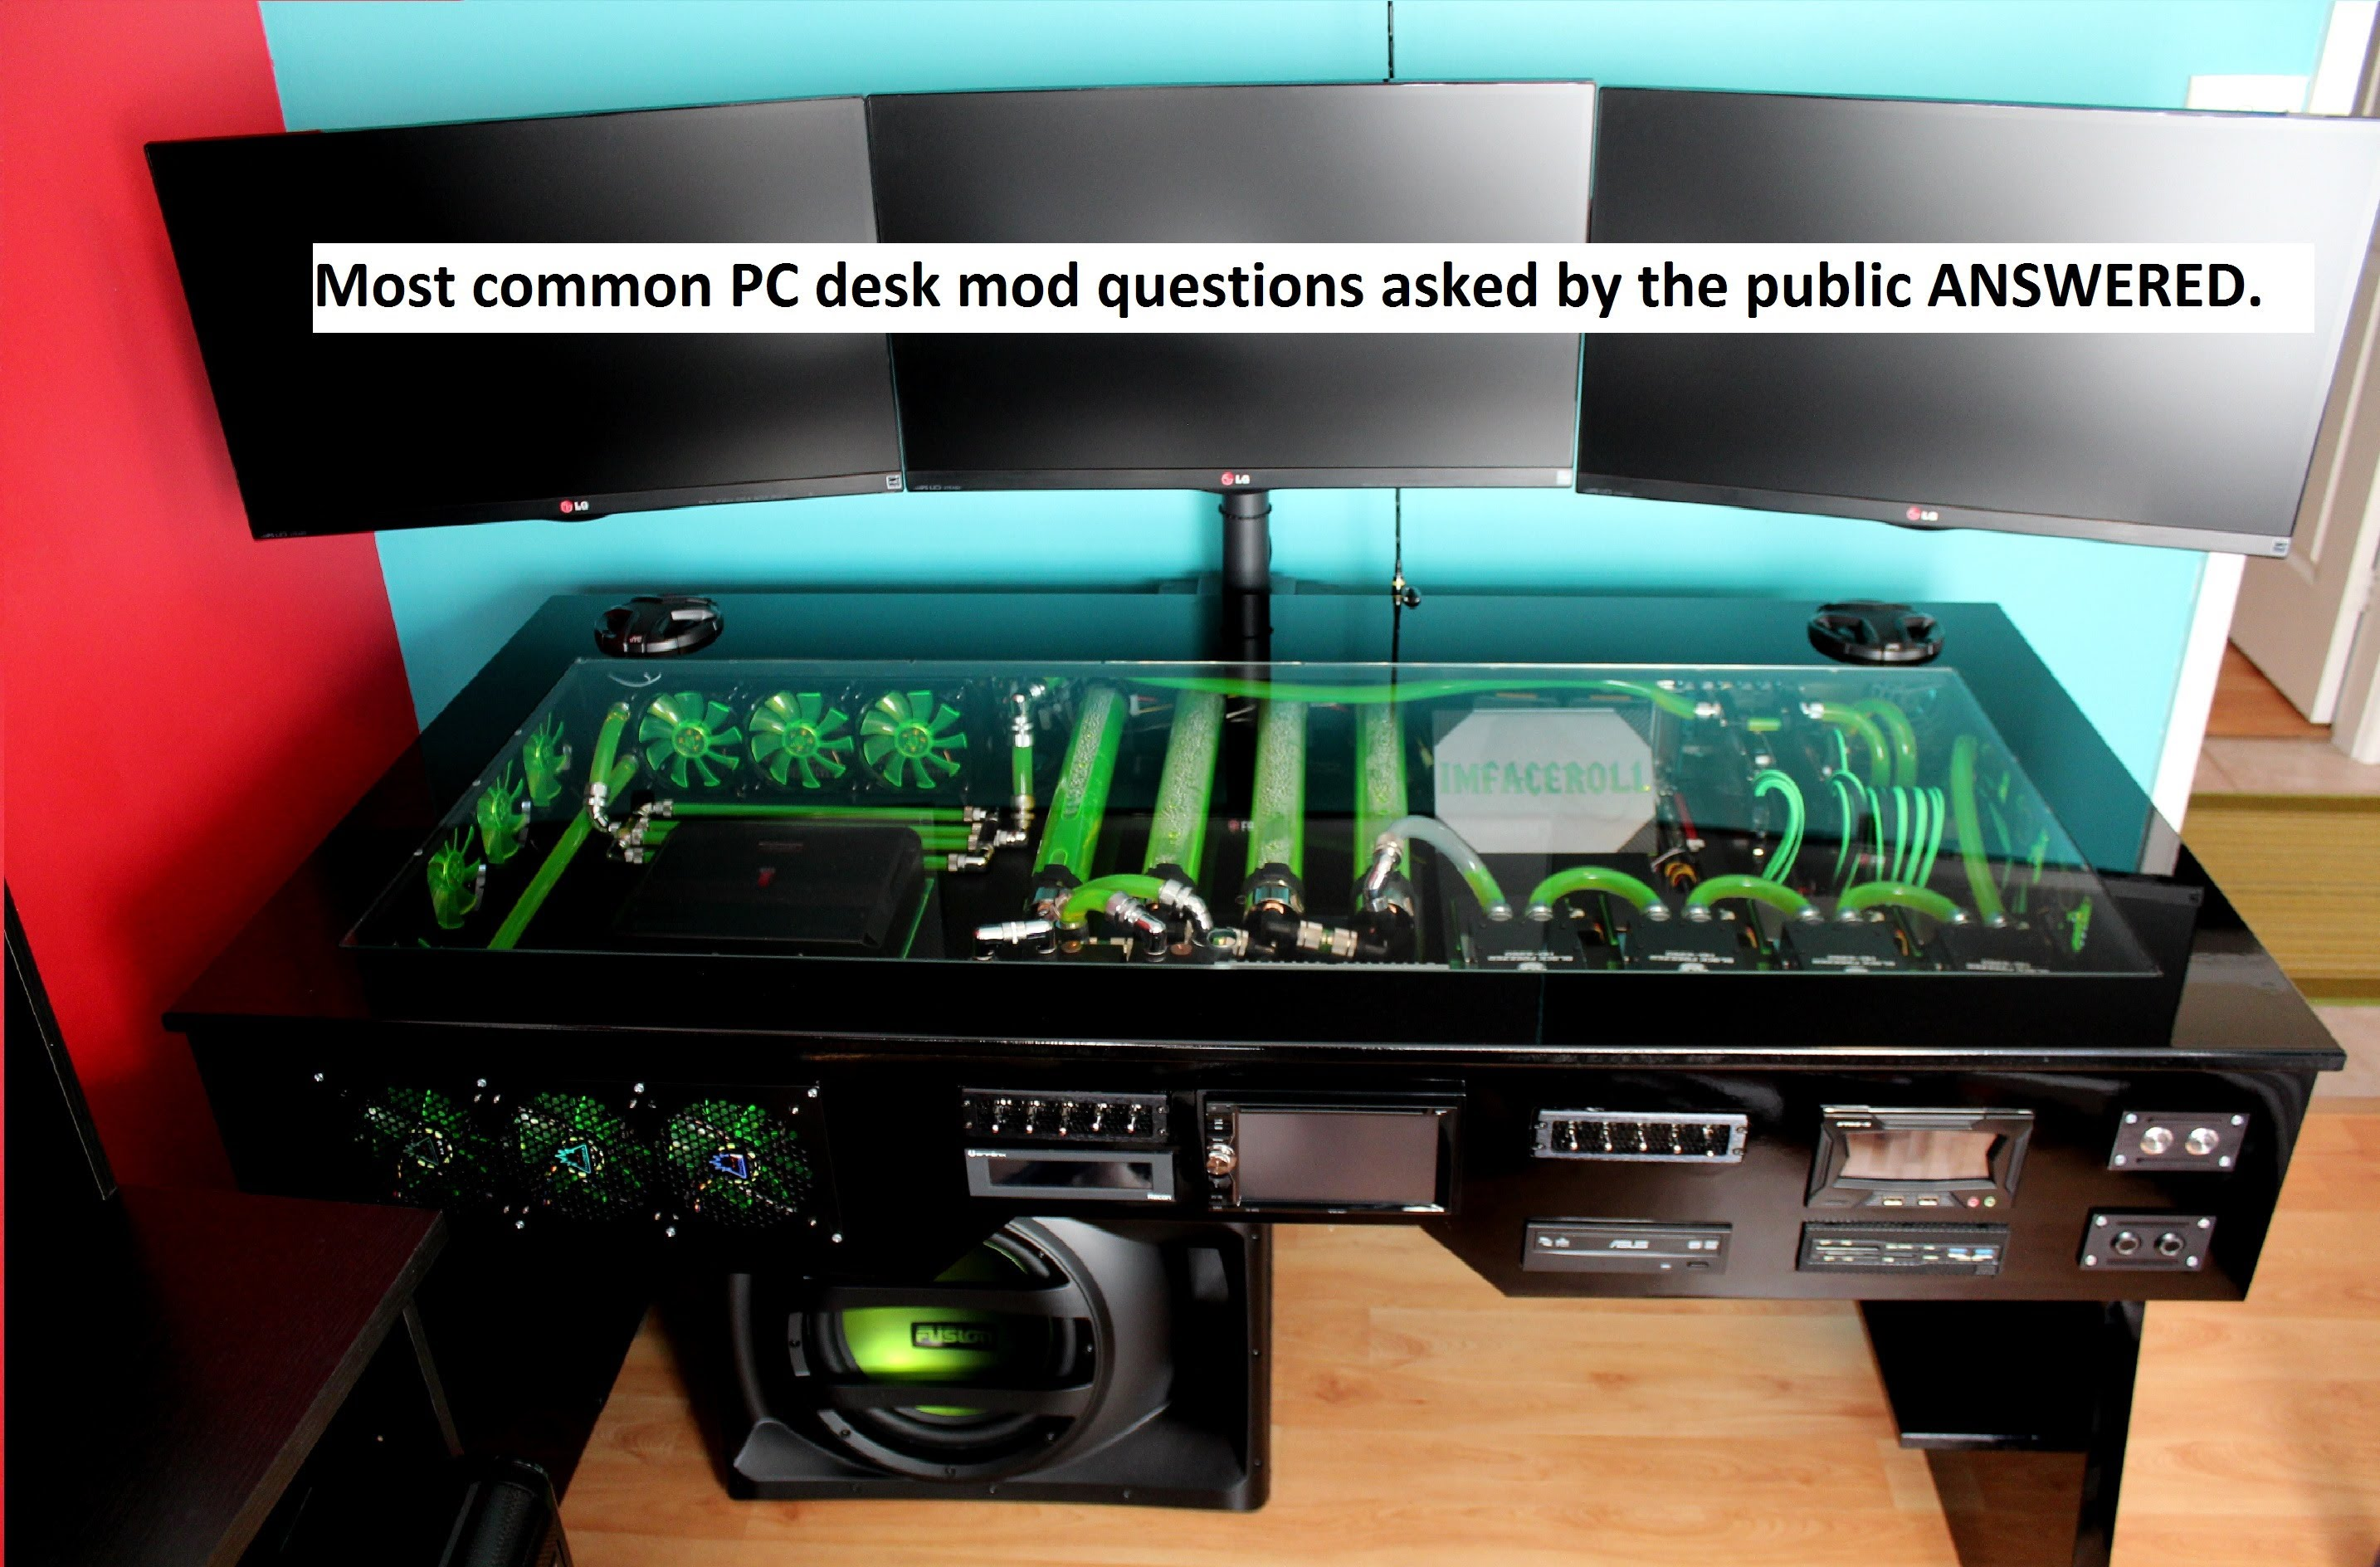 custom water cooled pc desk mod commonly asked questions answered. - youtube QCLBCUO